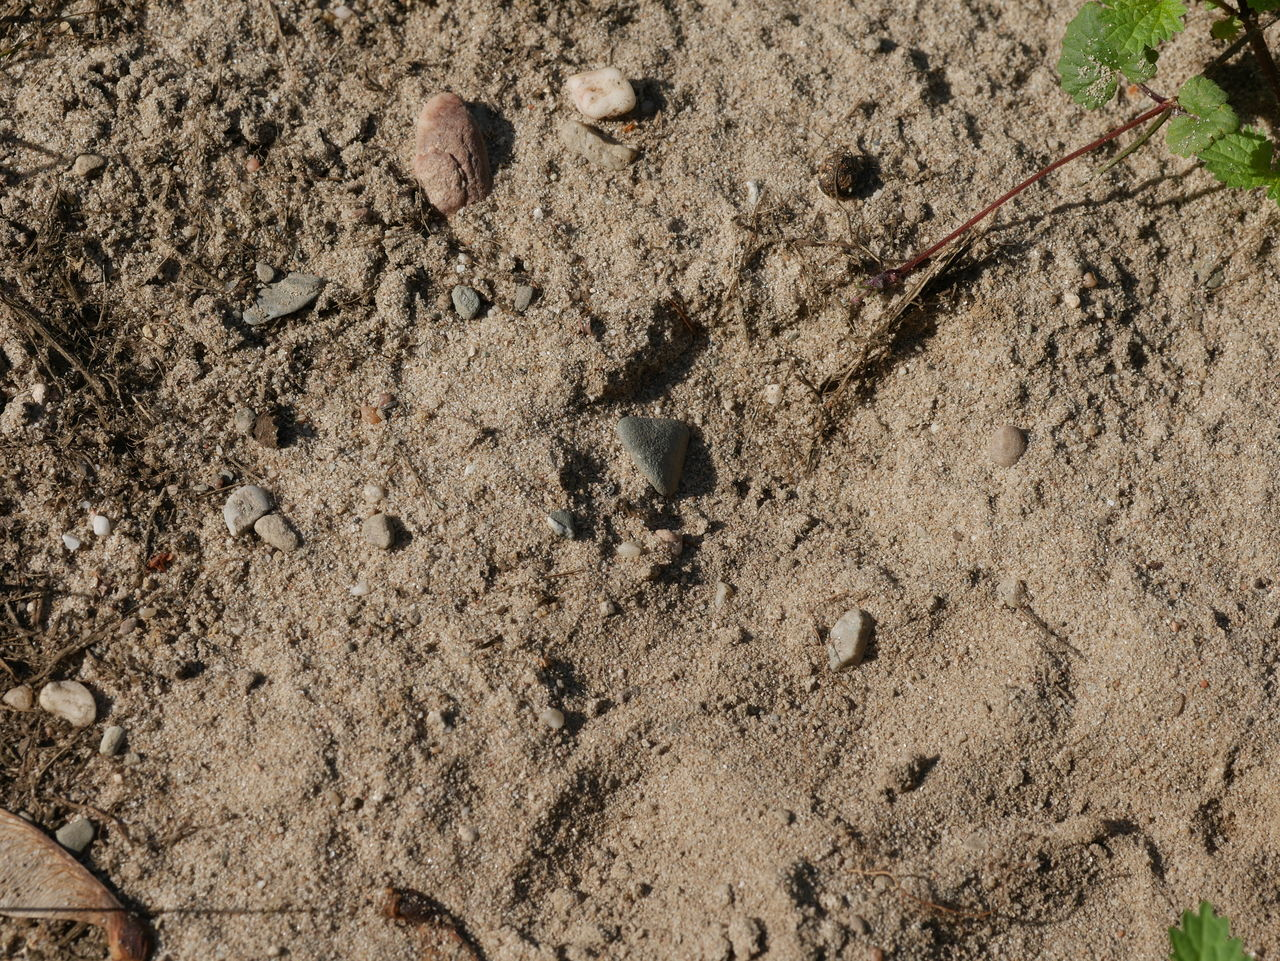 animal track, footprint, high angle view, paw print, no people, day, outdoors, sand, close-up, animal themes, nature, mammal